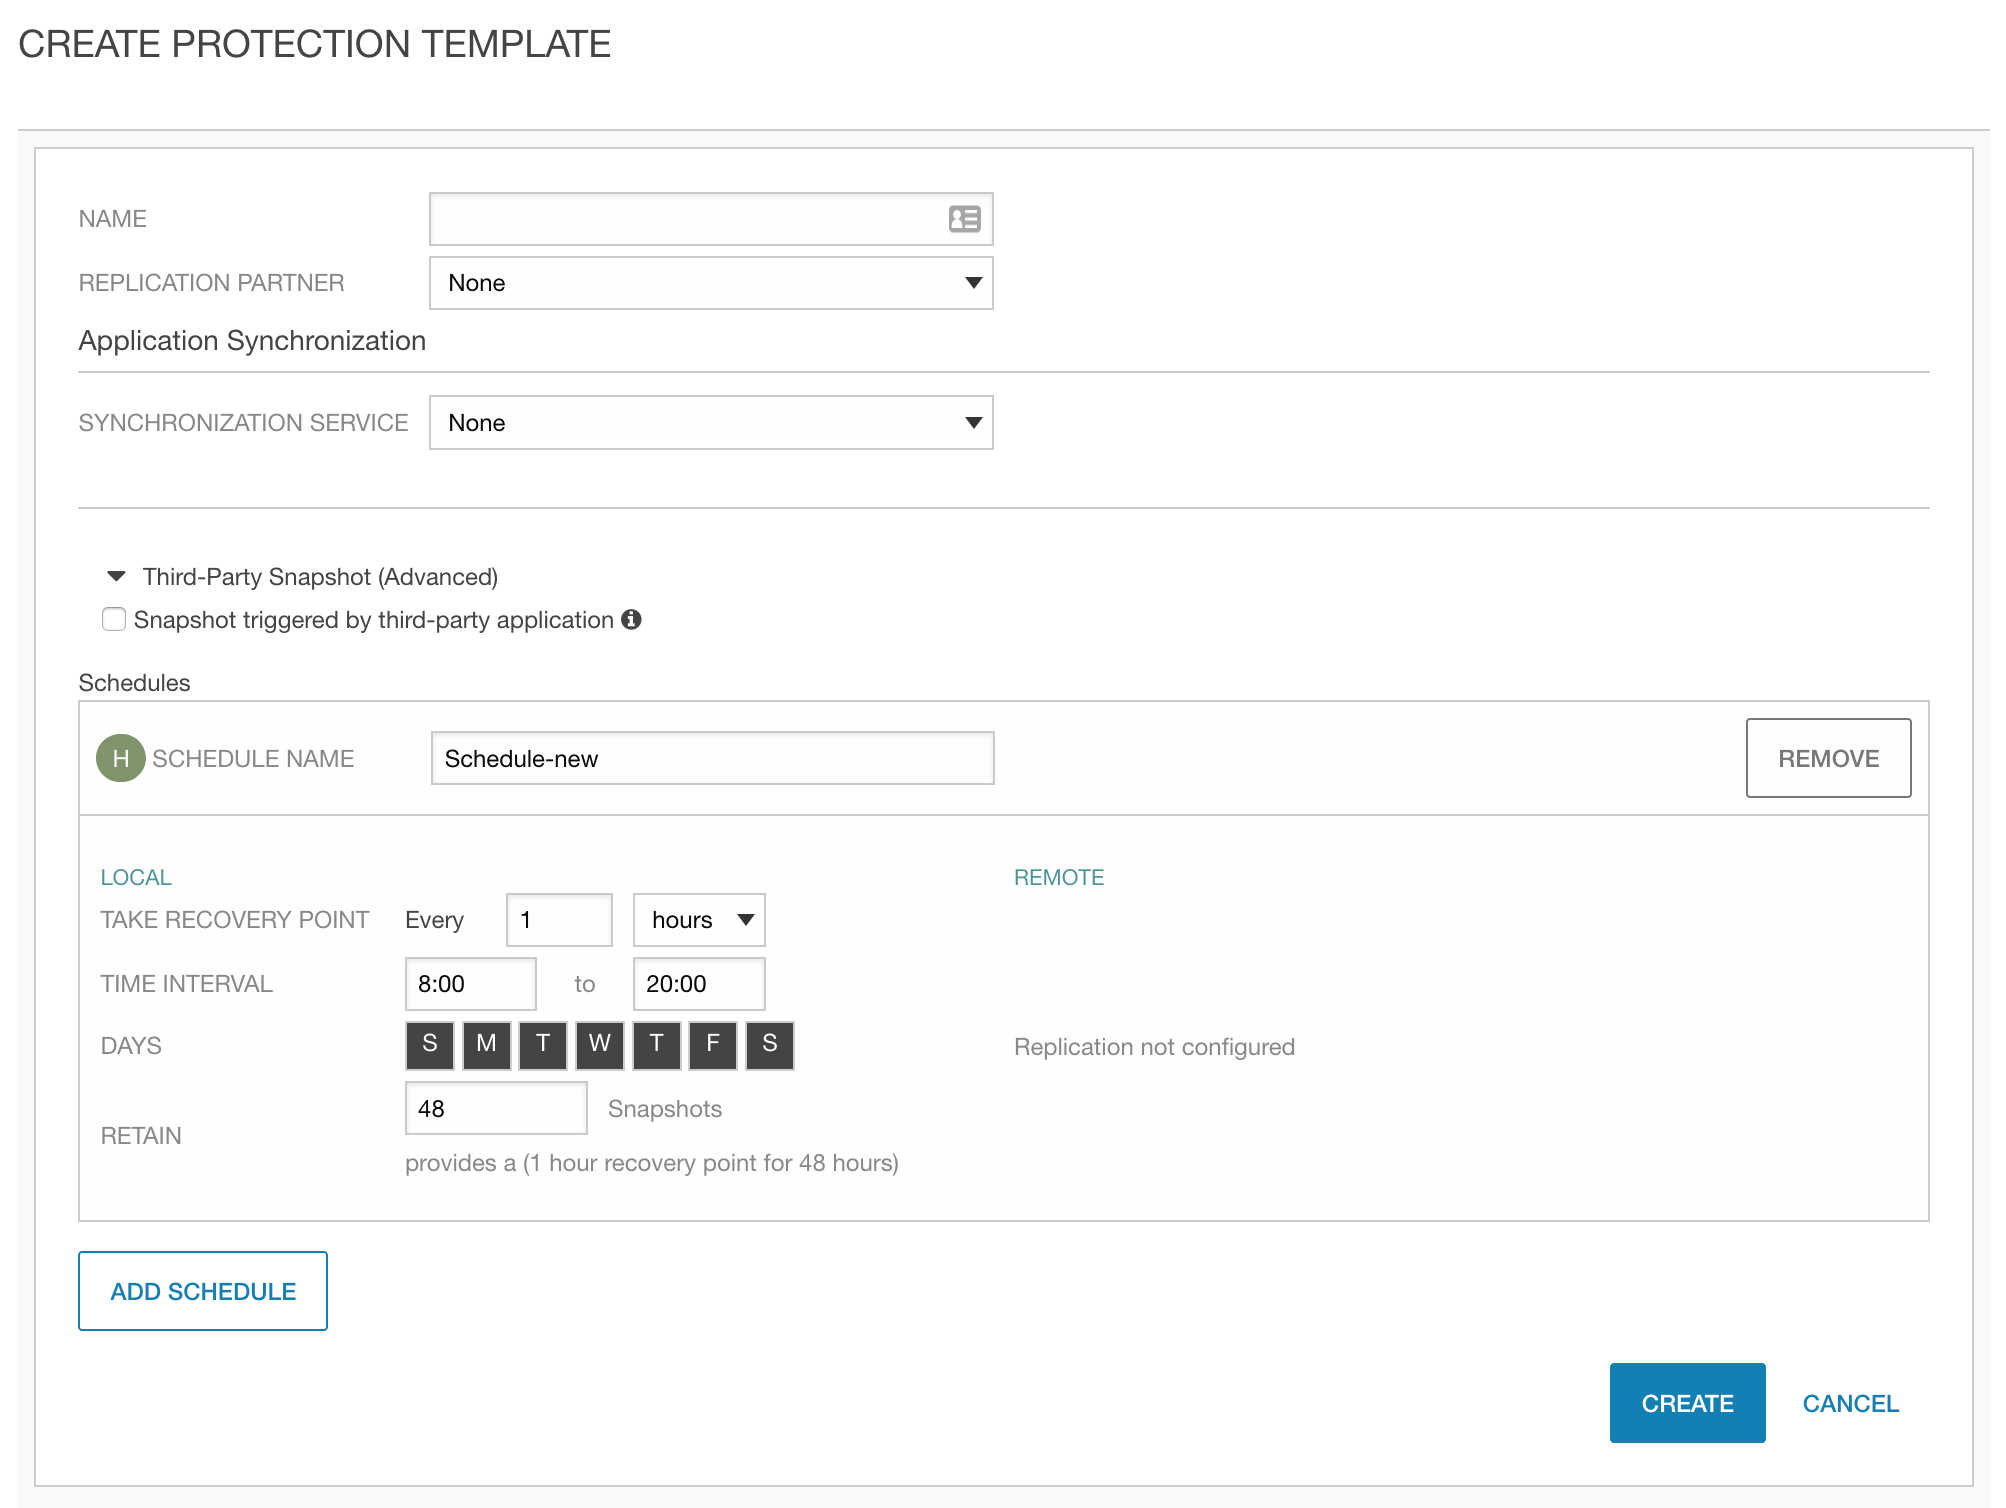 HPE Nimble Storage Protection Templates